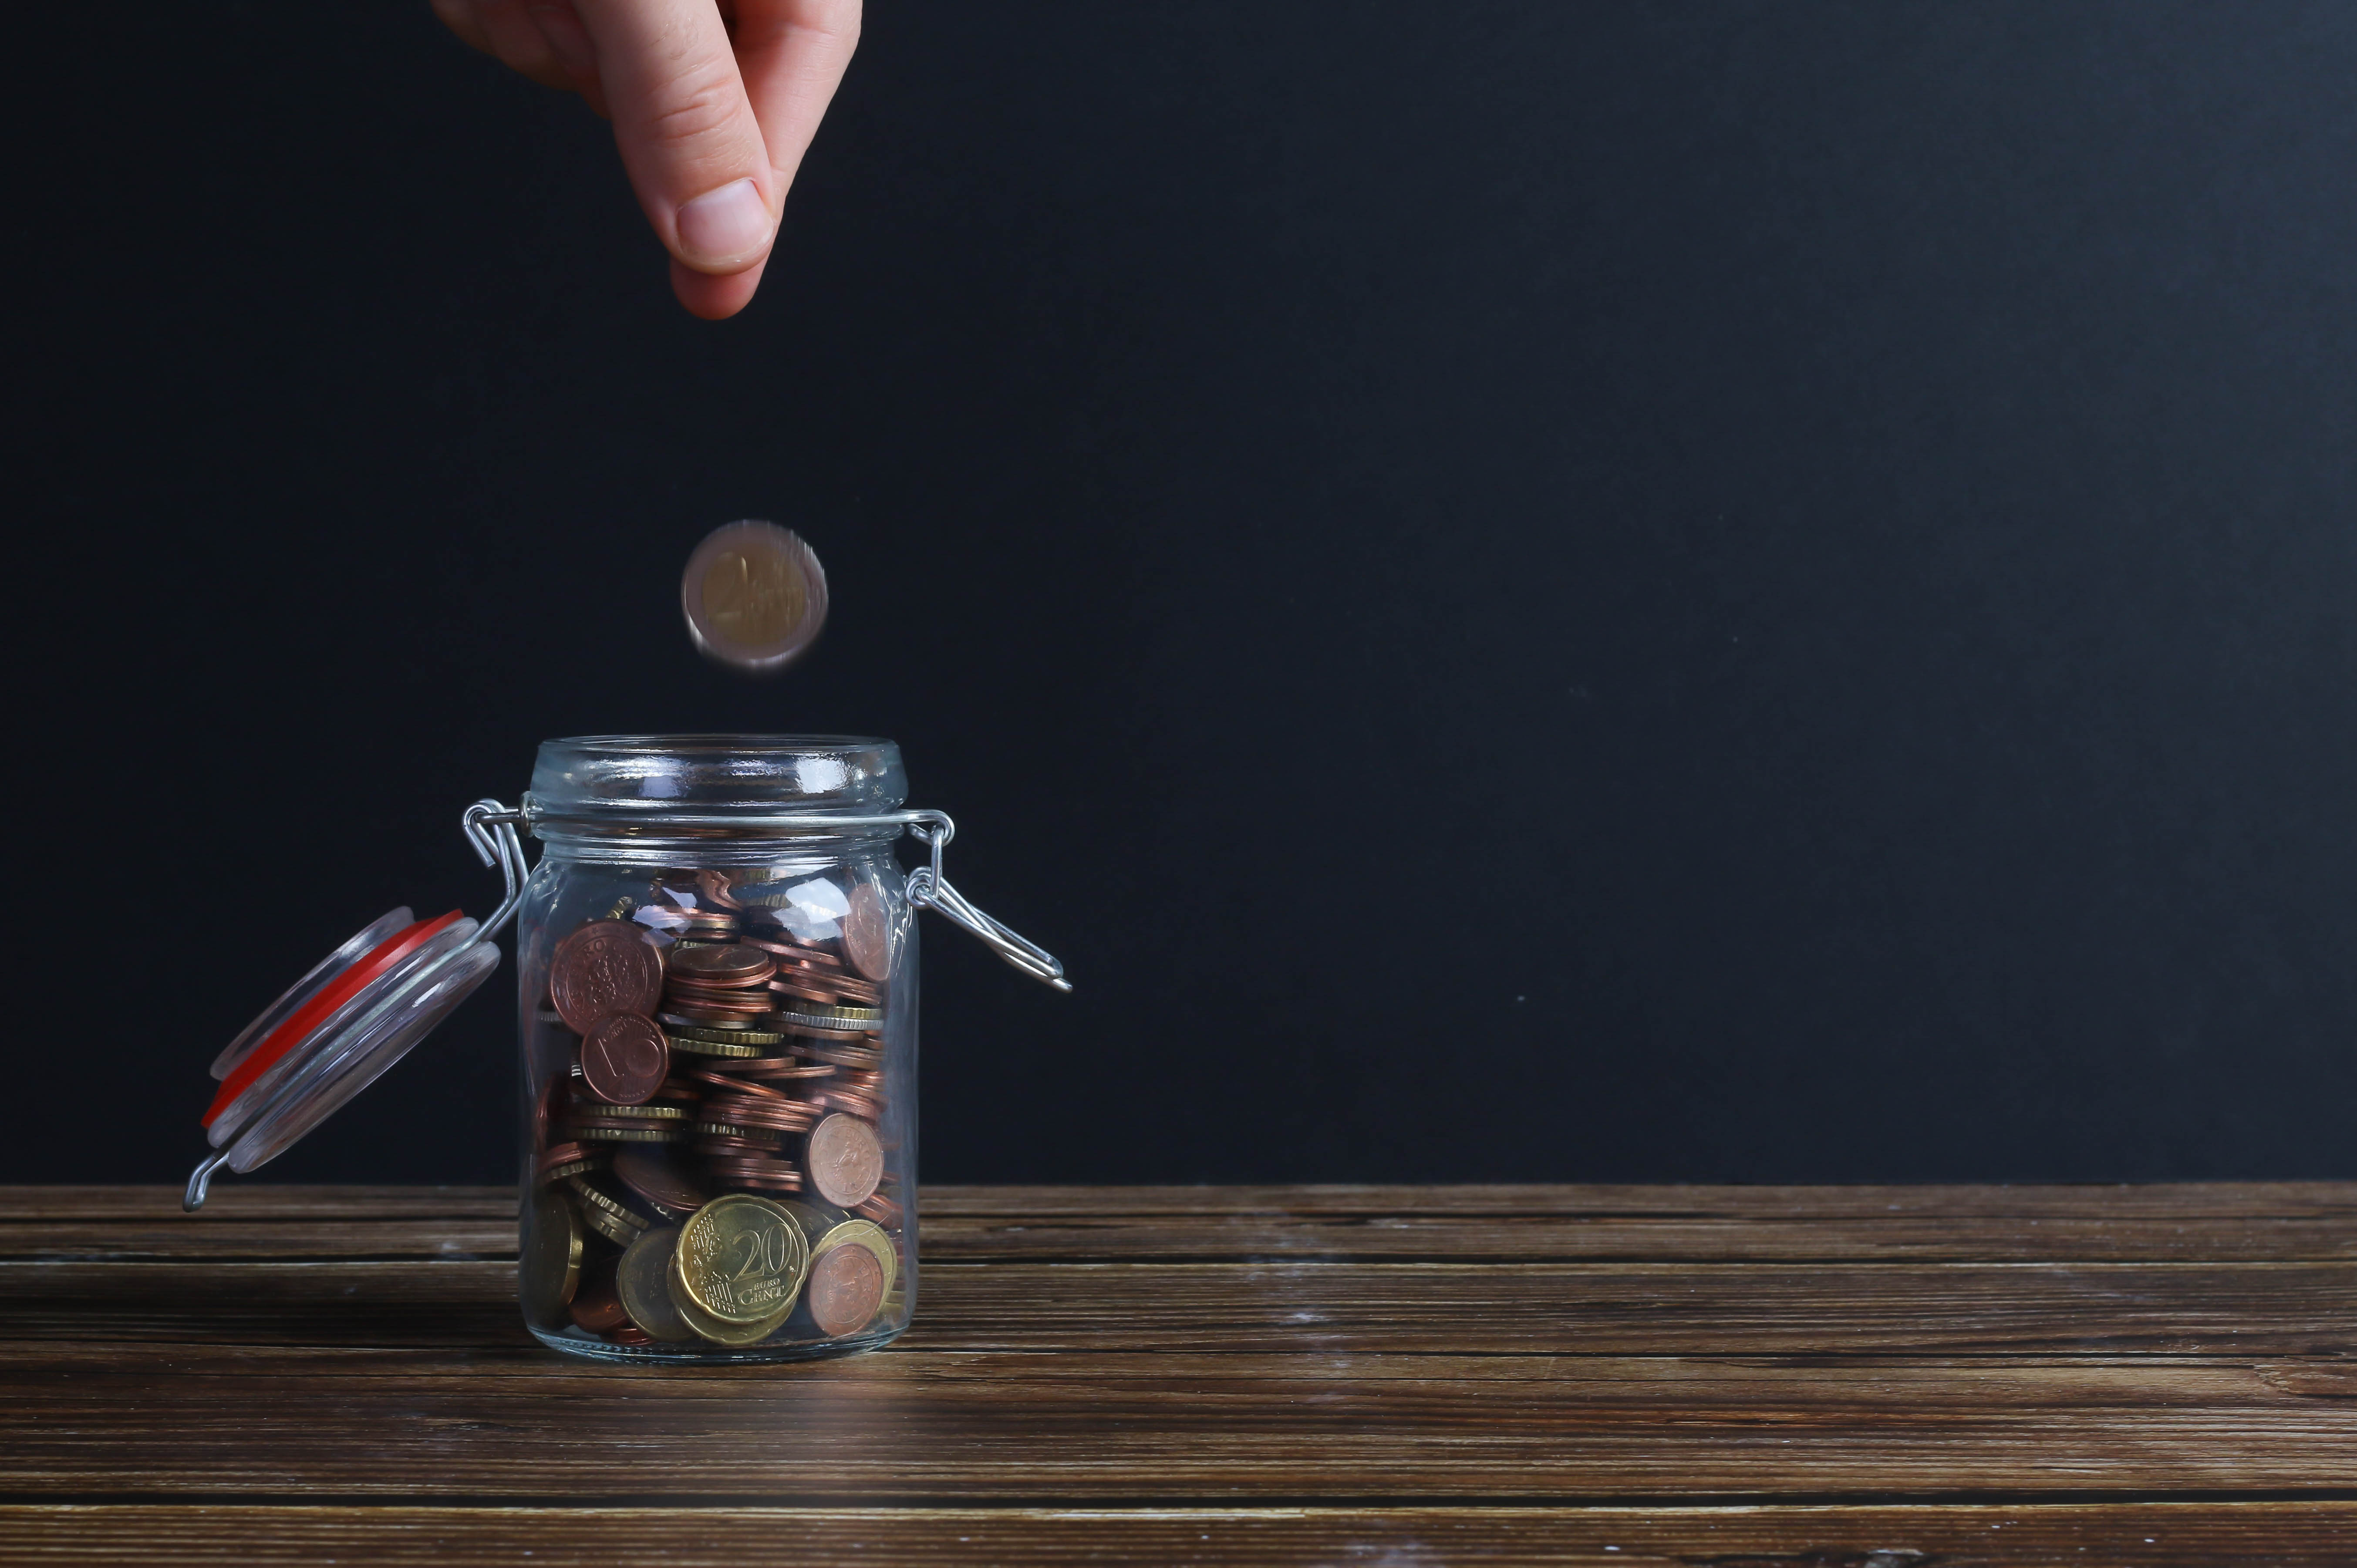 Coin being dropped in jar